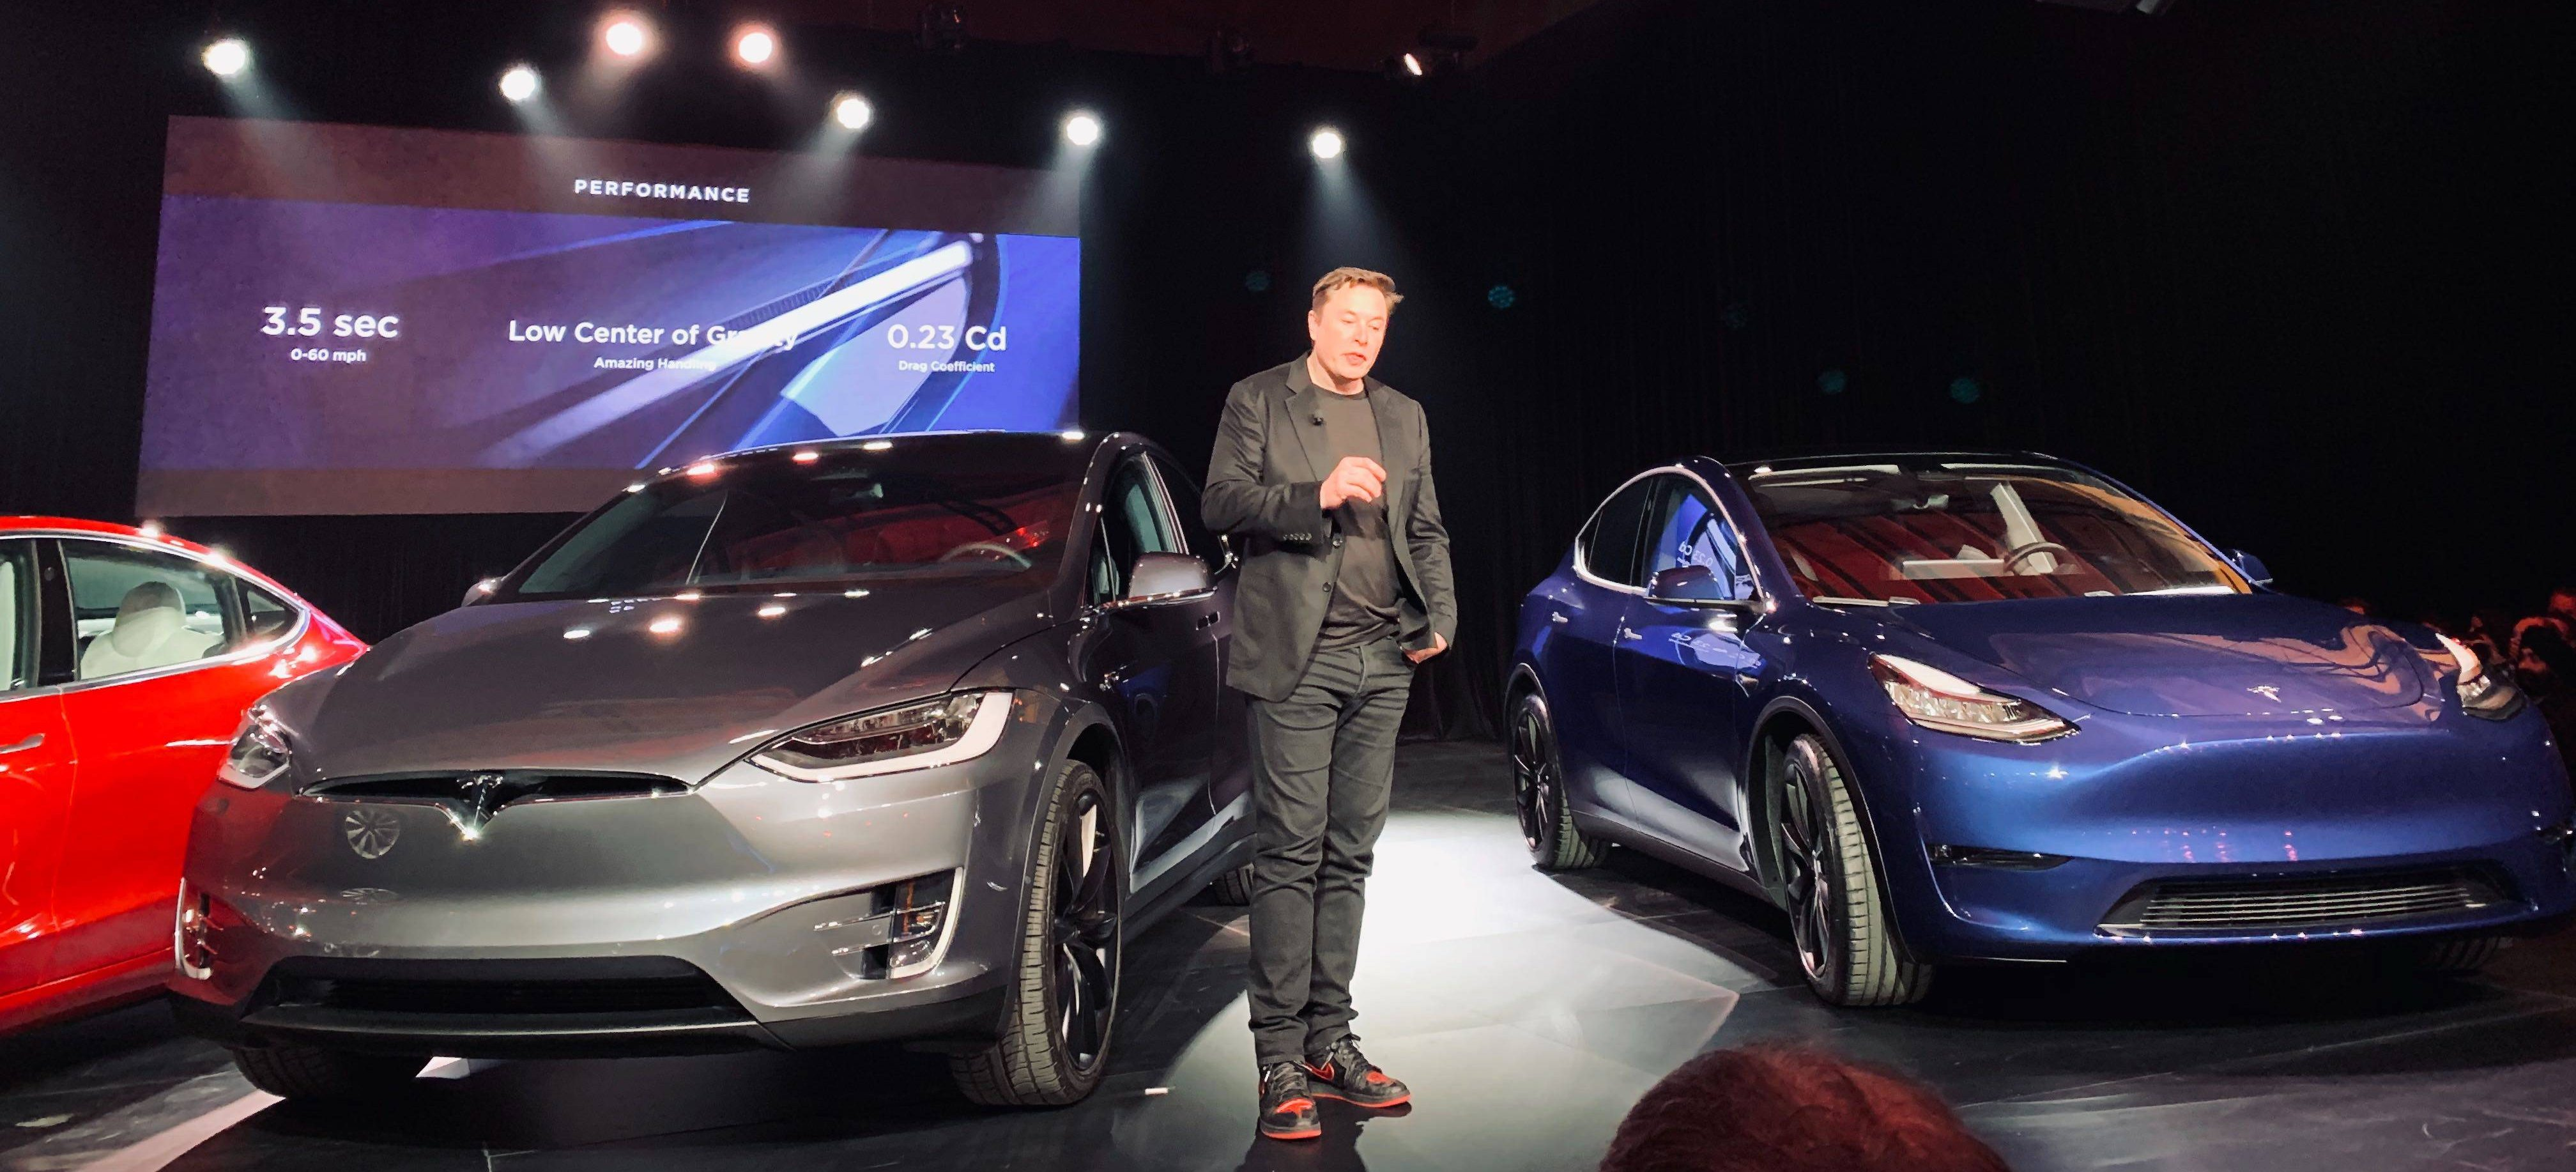 Tesla CEO Elon Musk nears first bonus payday, but it's really complicated - Teslarati